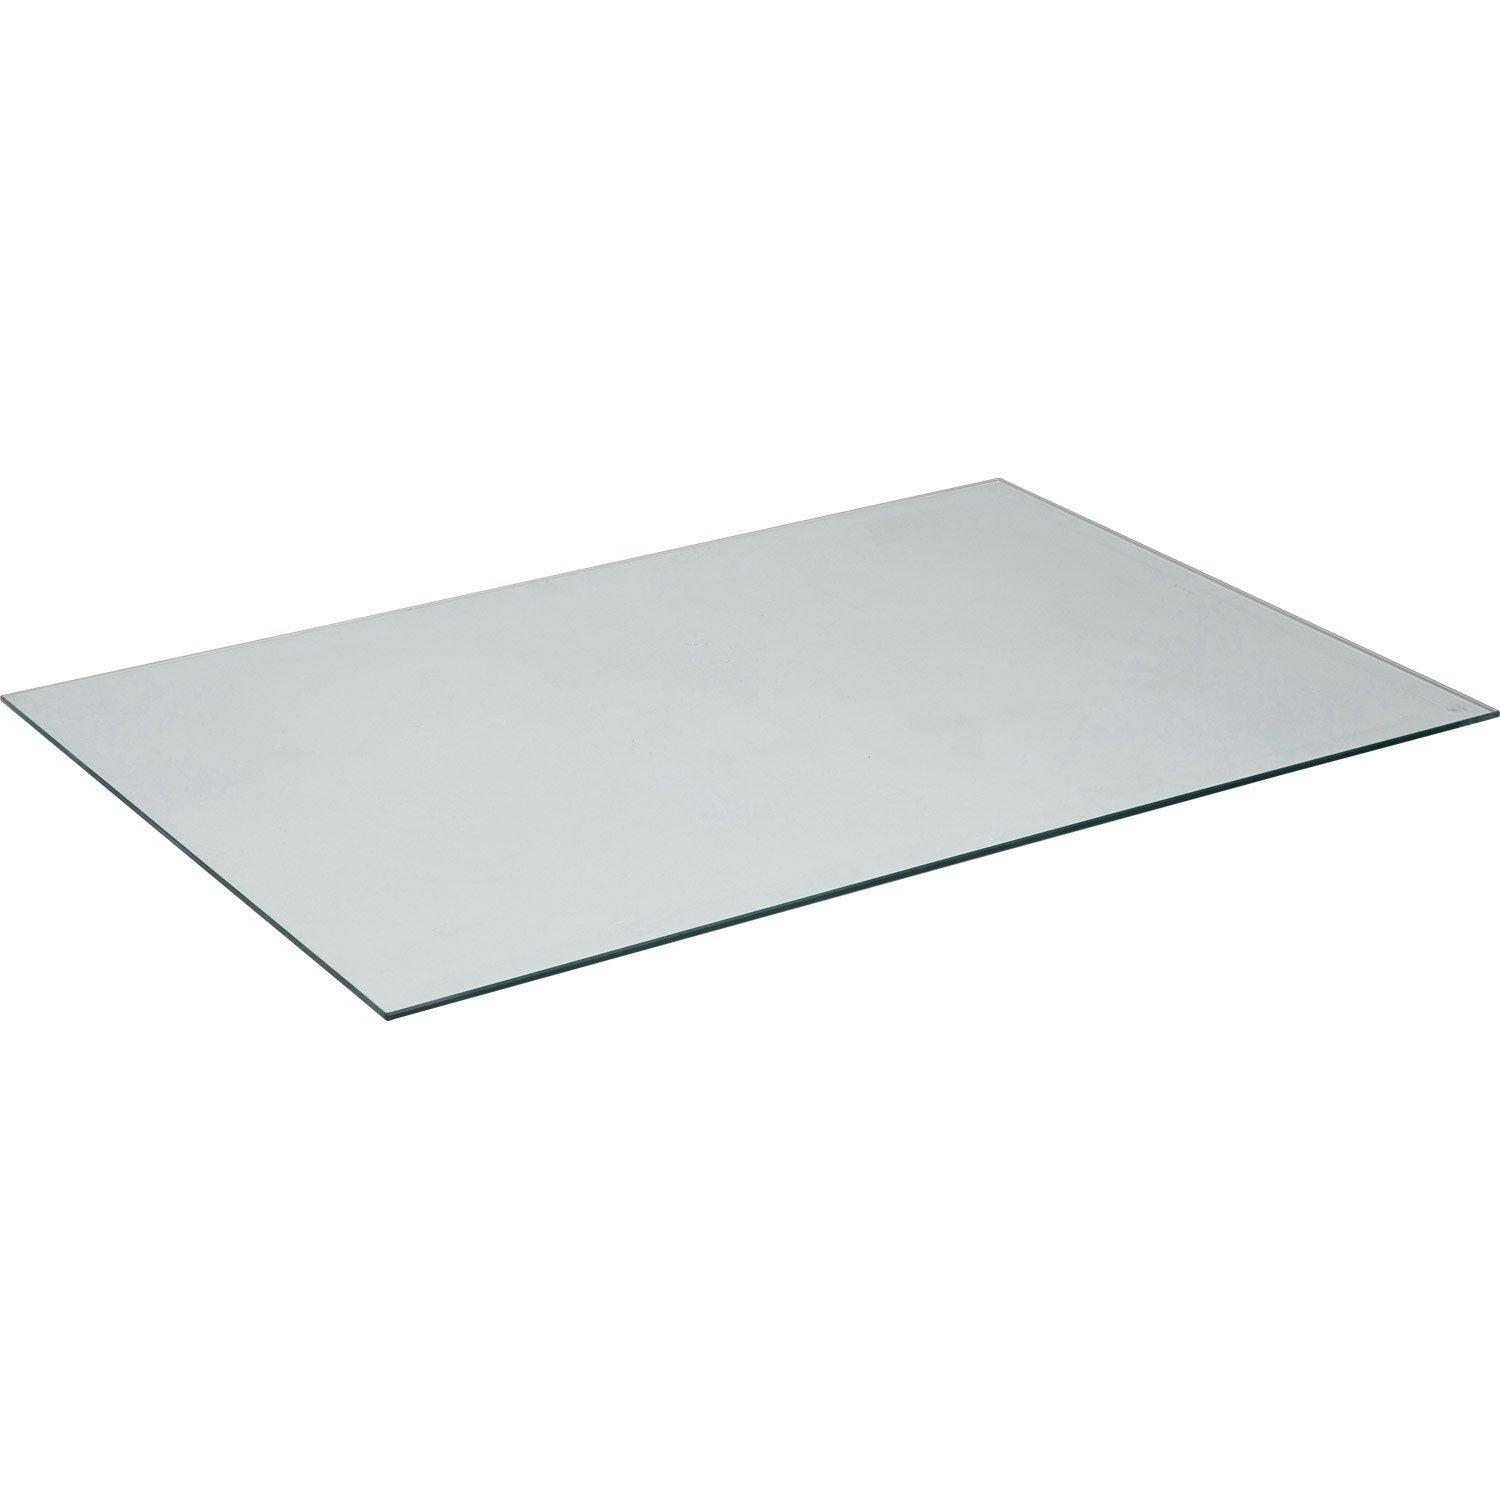 Plateau de table verre x cm x ep 8 mm leroy merlin - Table plateau verre trempe ...